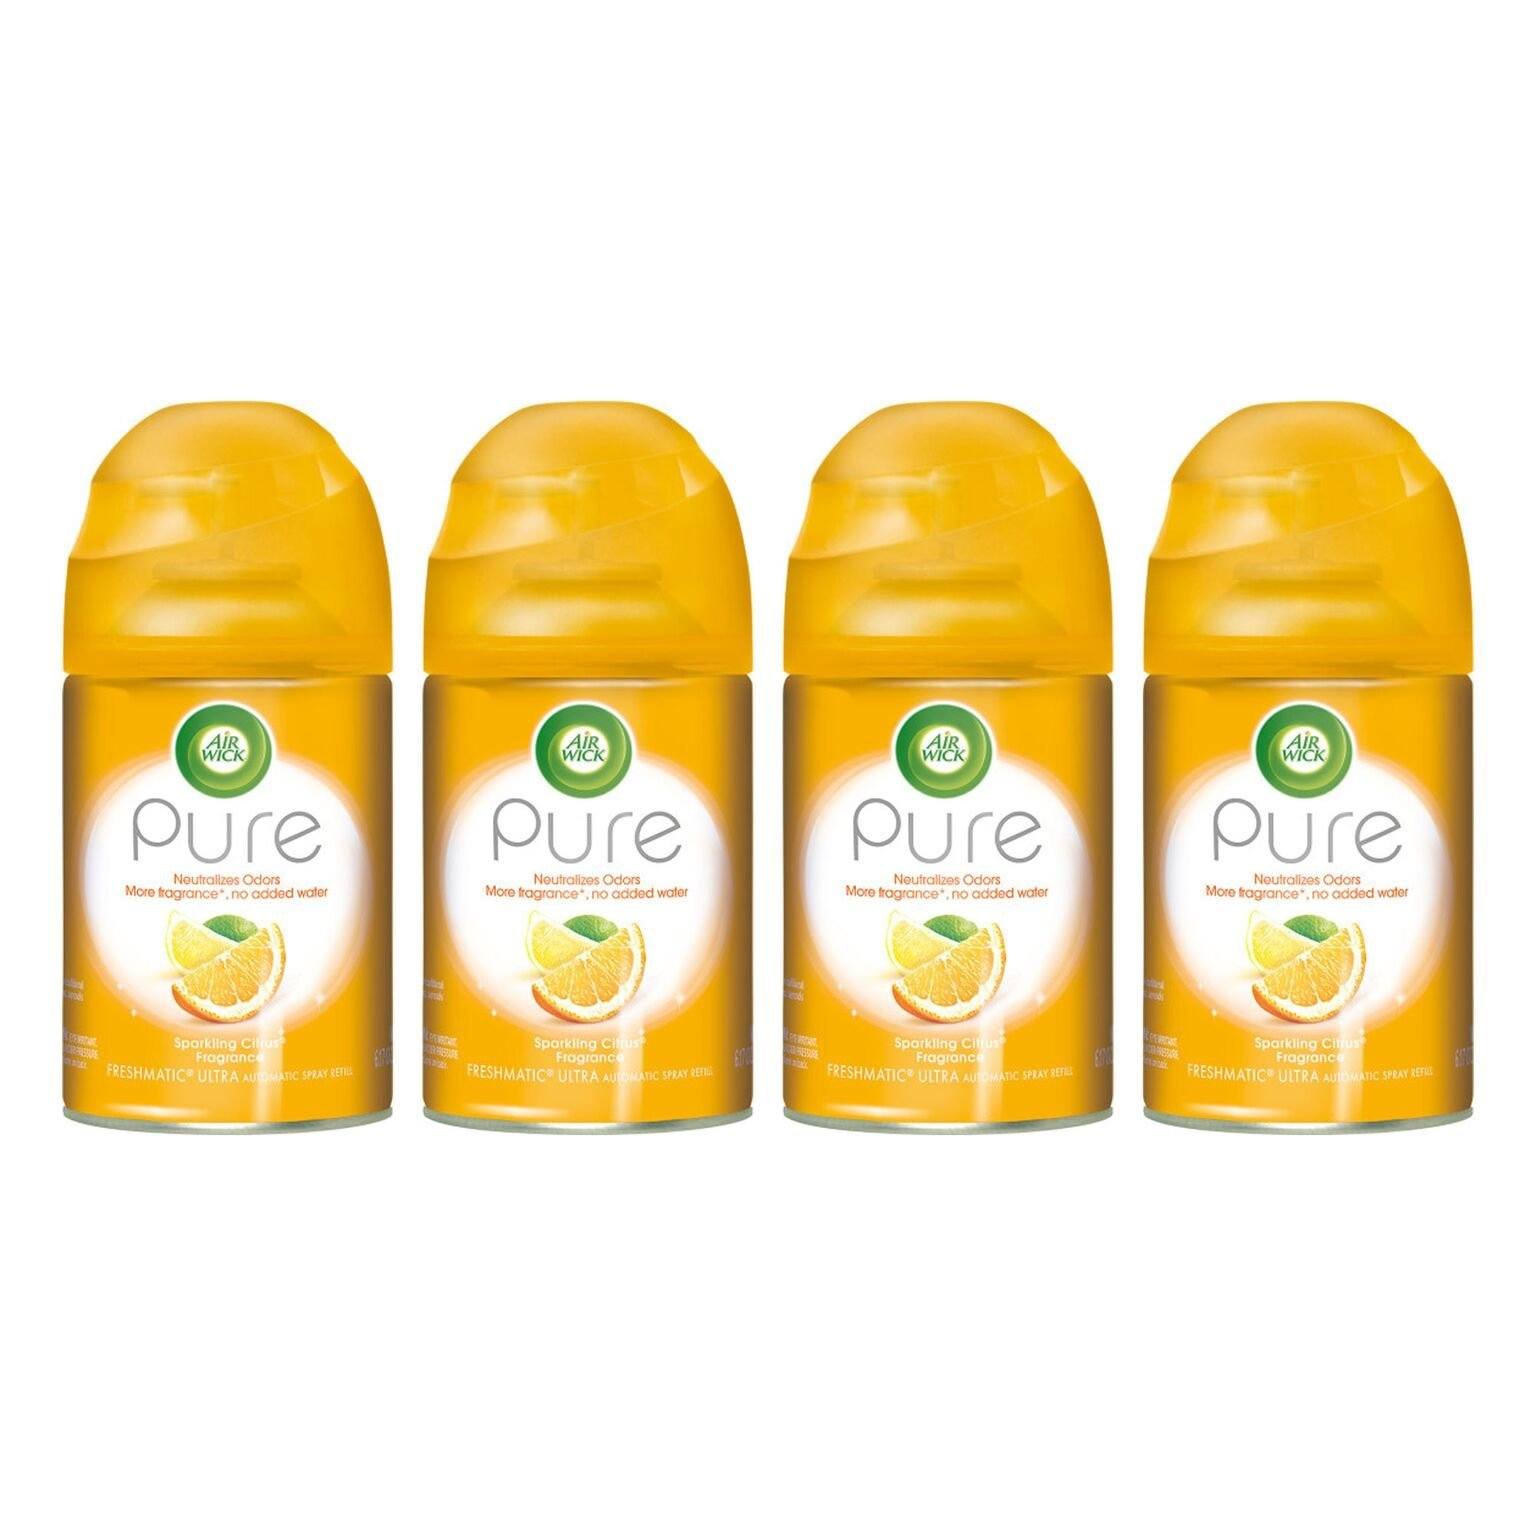 Air Wick - Pure Freshmatic Refill Automatic Spray, Sparkling Citrus, 6.17oz, Air Freshener (Pack of 4) by Air Wick (Image #1)